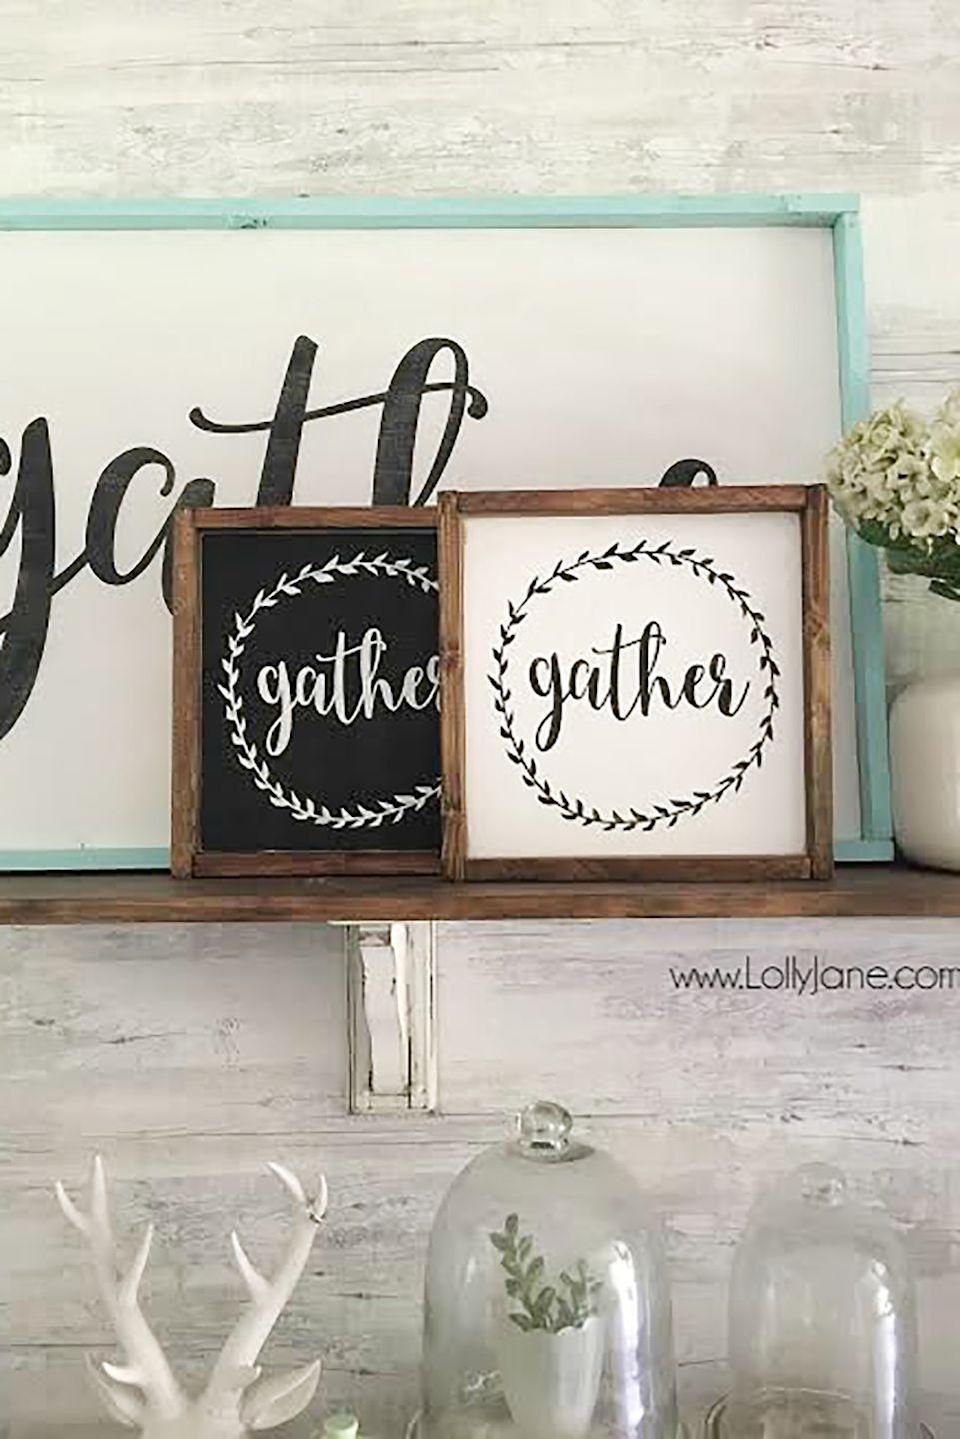 """<p>DIY your own Thanksgiving-themed art with a free printable.</p><p><strong>Get the tutorial at <a href=""""http://lollyjane.com/gather-mini-sign/"""" rel=""""nofollow noopener"""" target=""""_blank"""" data-ylk=""""slk:Lolly Jane"""" class=""""link rapid-noclick-resp"""">Lolly Jane</a>. </strong></p>"""